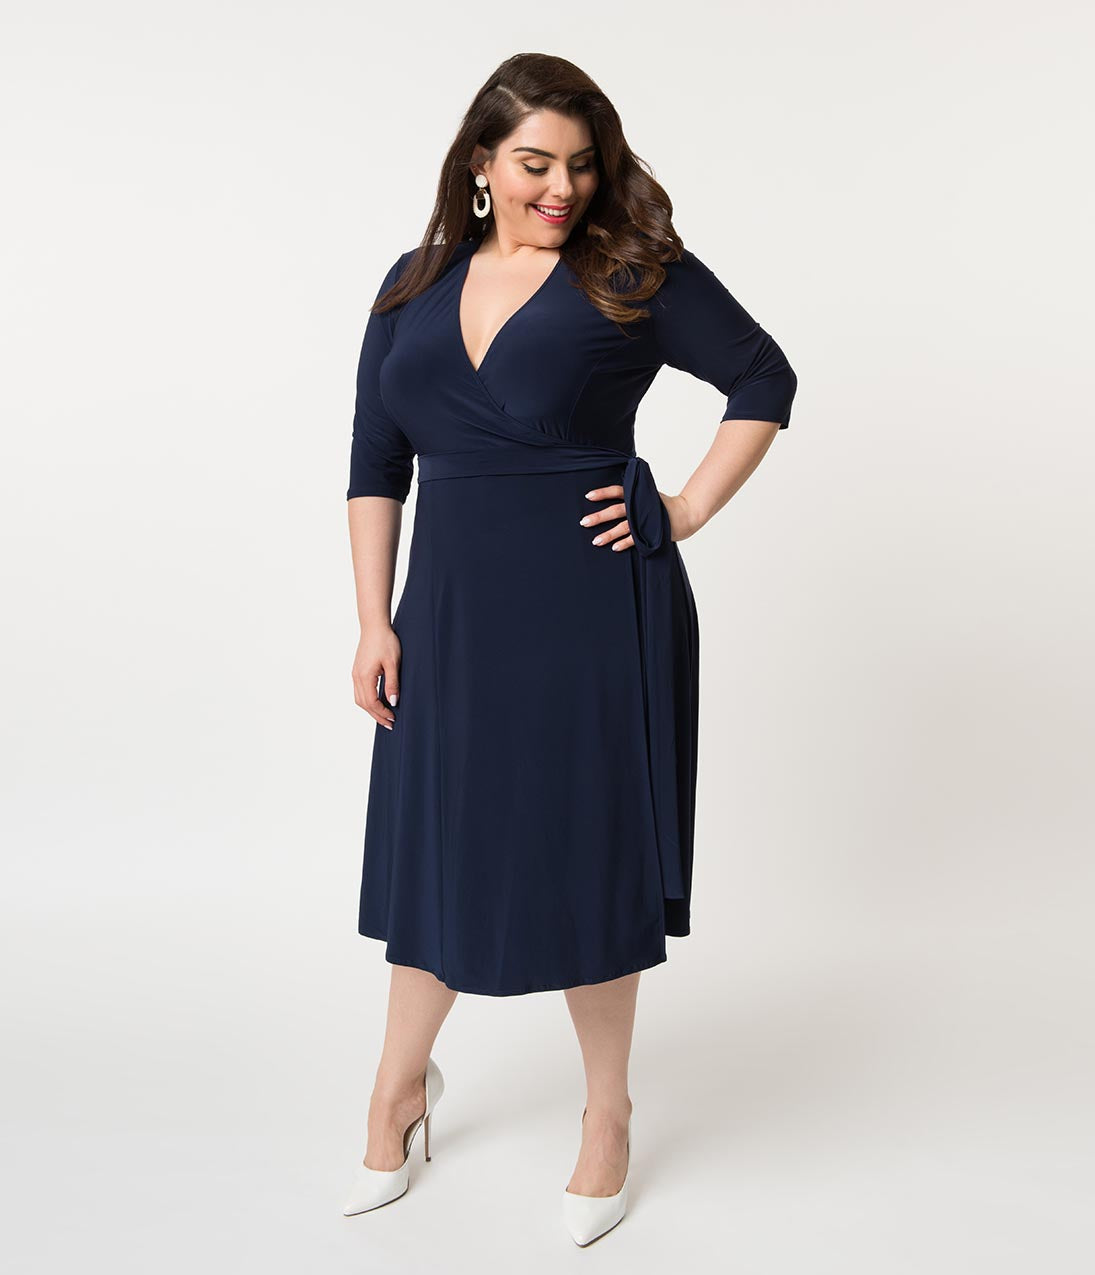 1940s Dresses | 40s Dress, Swing Dress Retro Style Plus Size Navy Blue Sleeved Essential Wrap Dress $88.00 AT vintagedancer.com